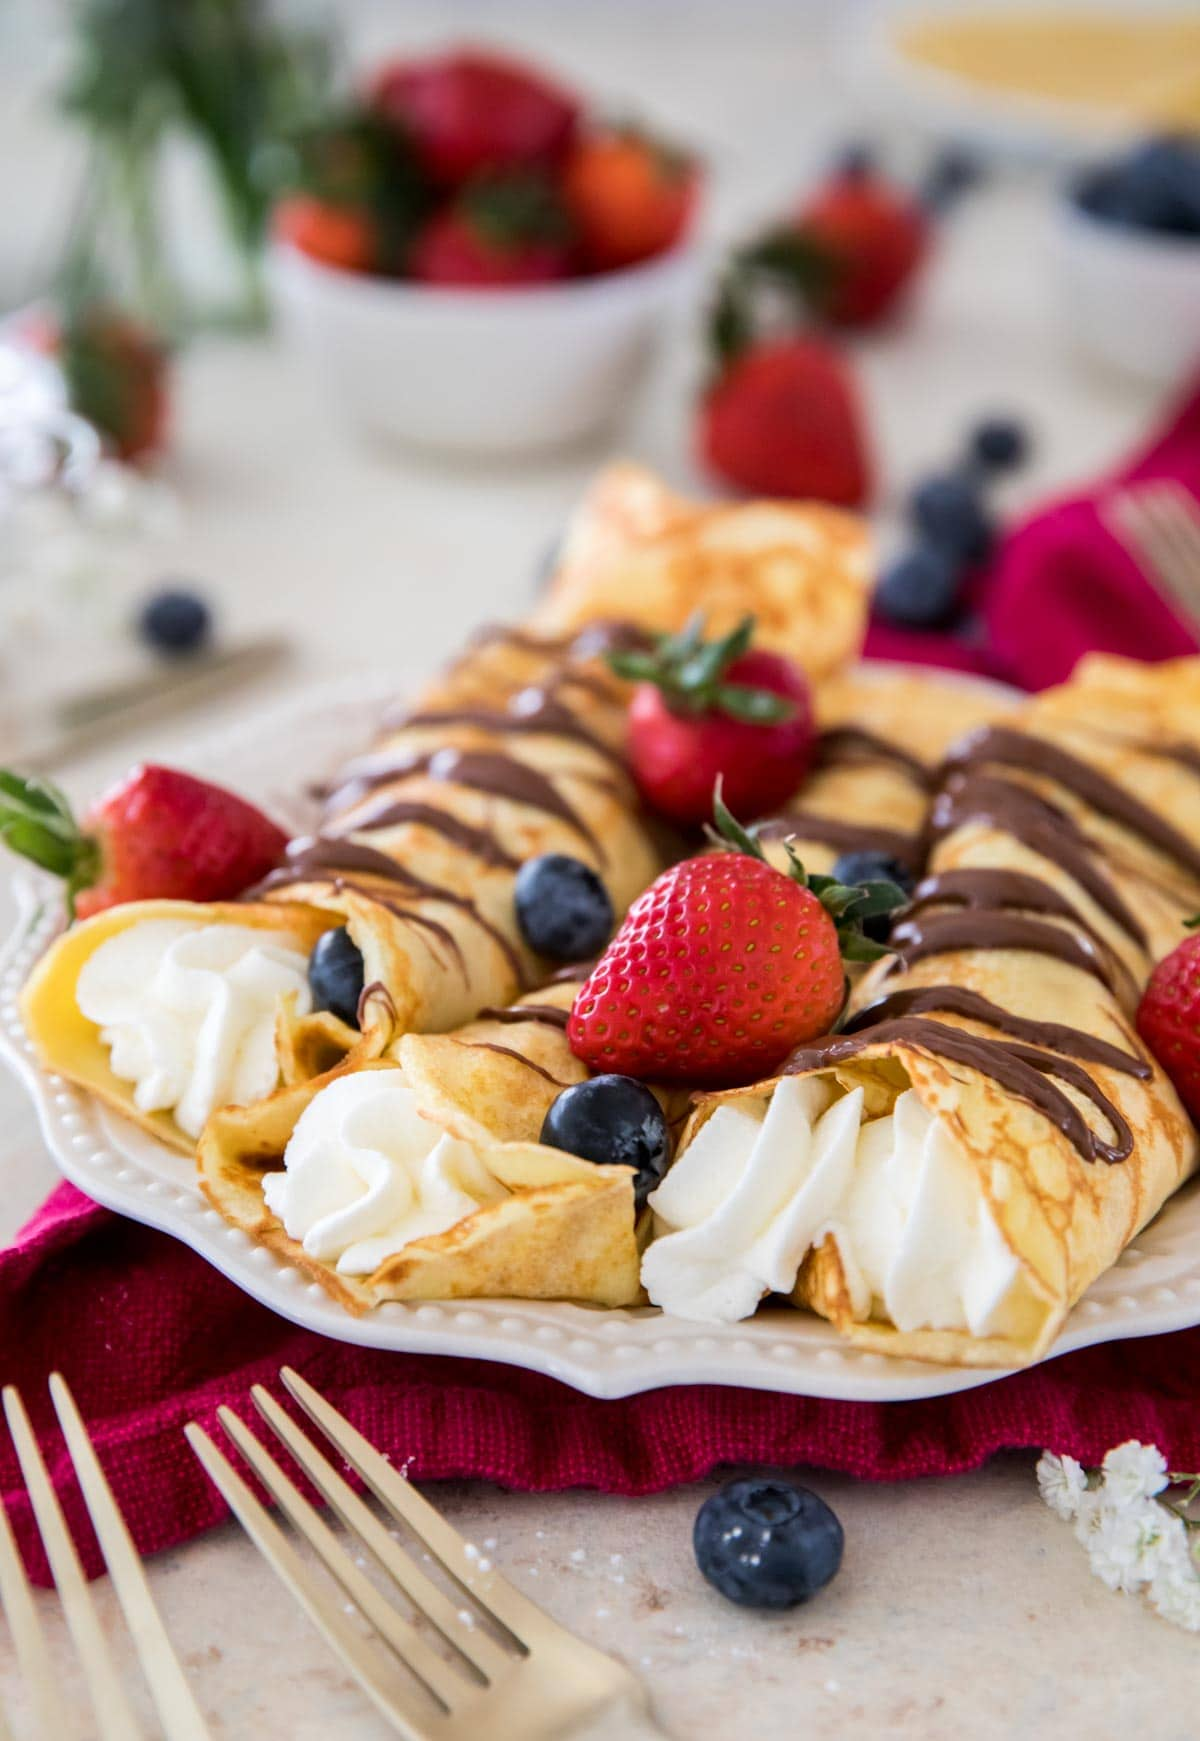 Crepes filled with whipped cream, drizzled with nutella and topped with berries